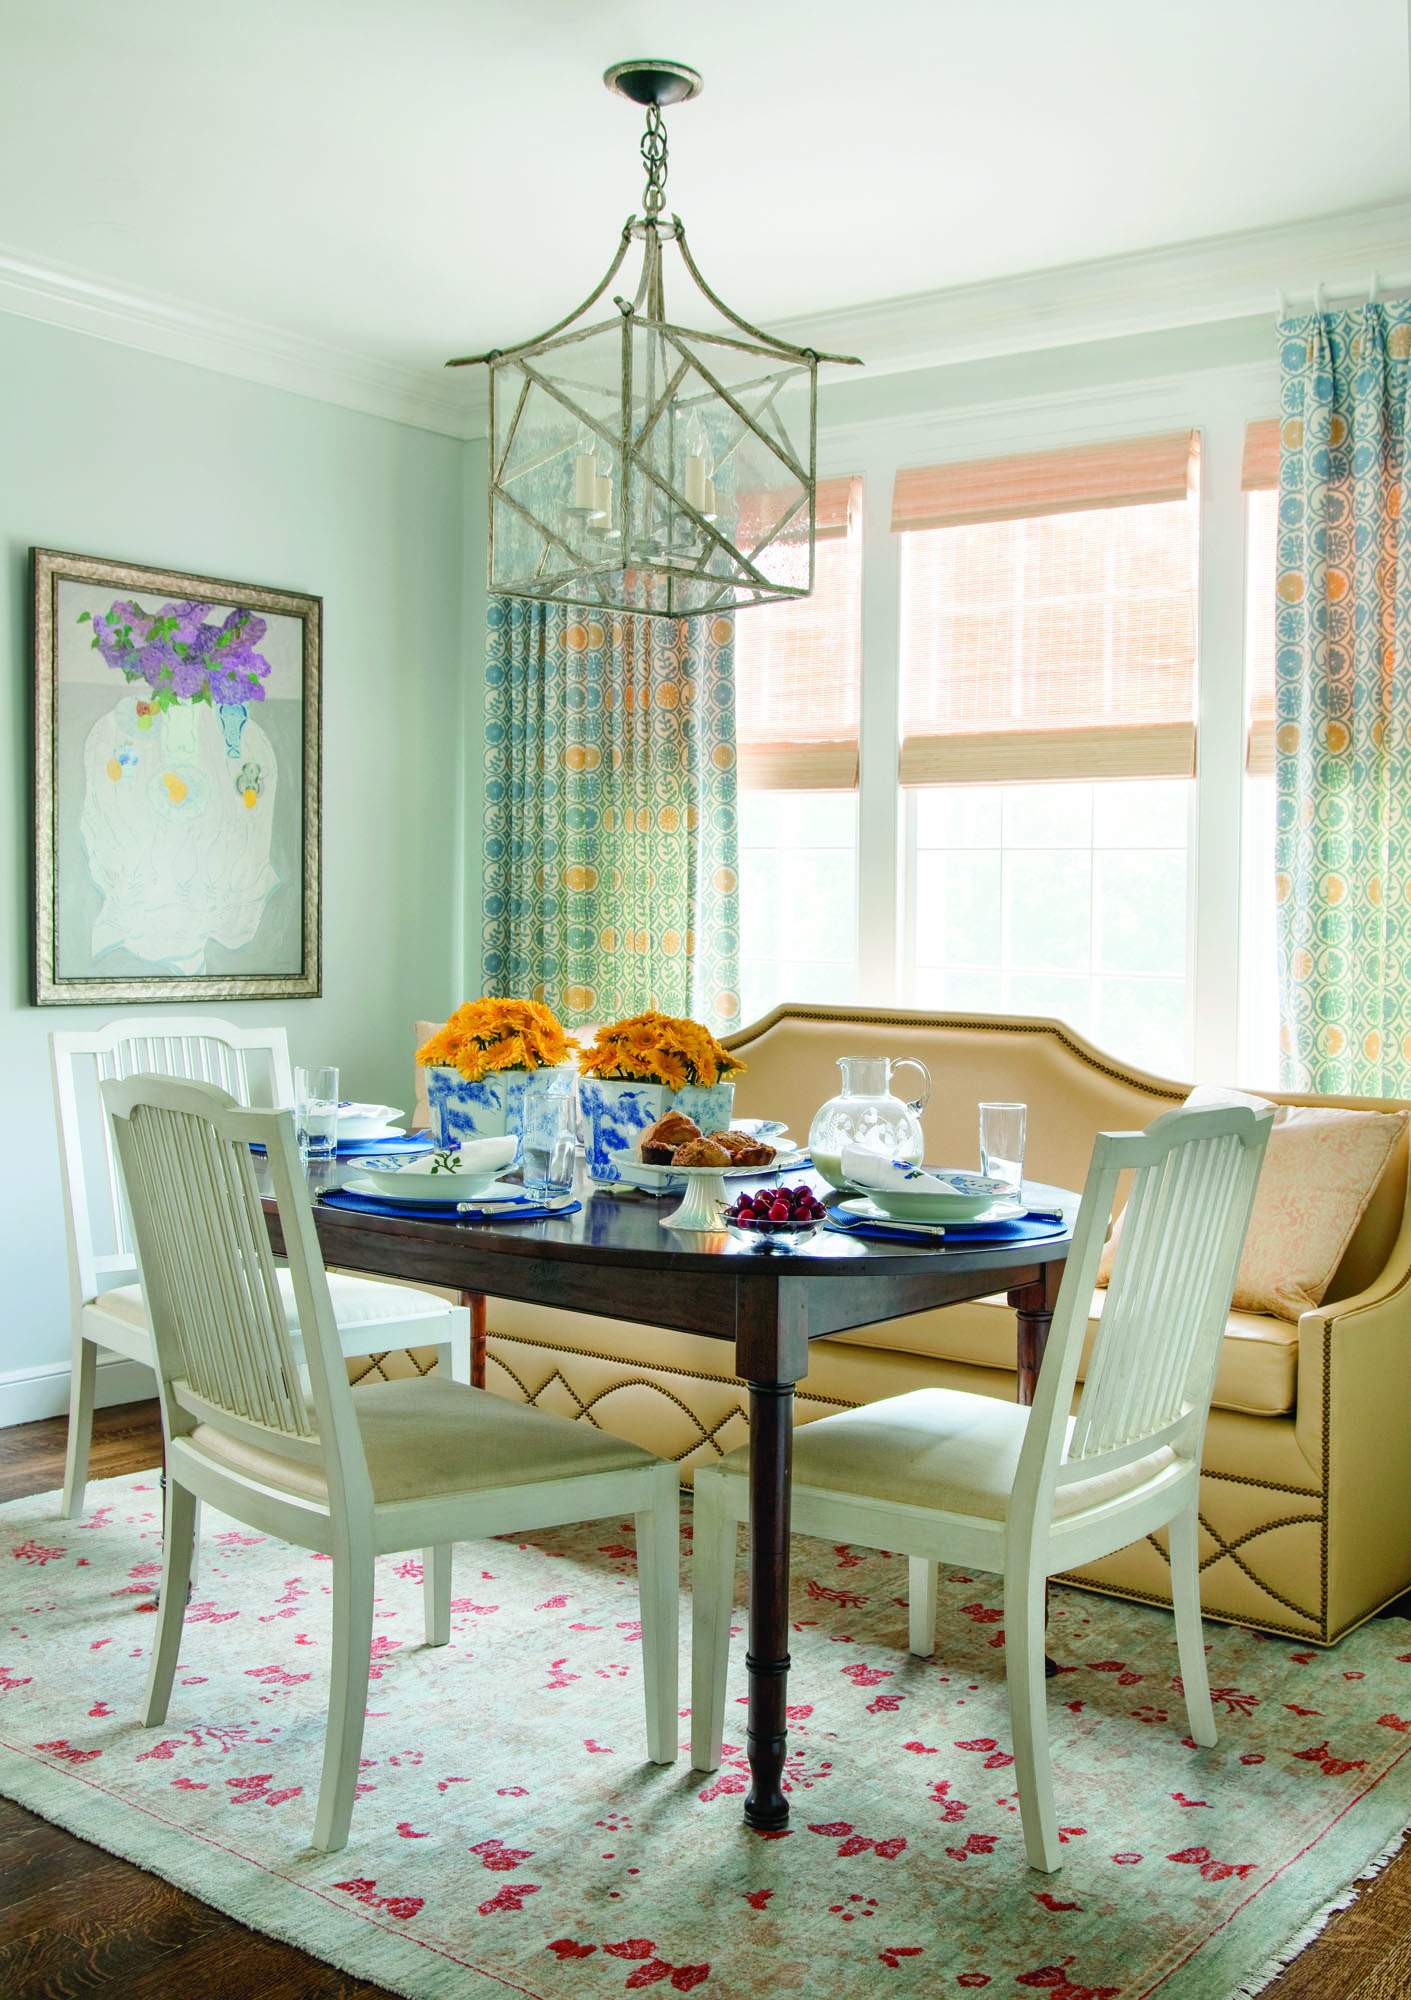 Carter keeps the dining space formal—the colors used are cool and elegant.